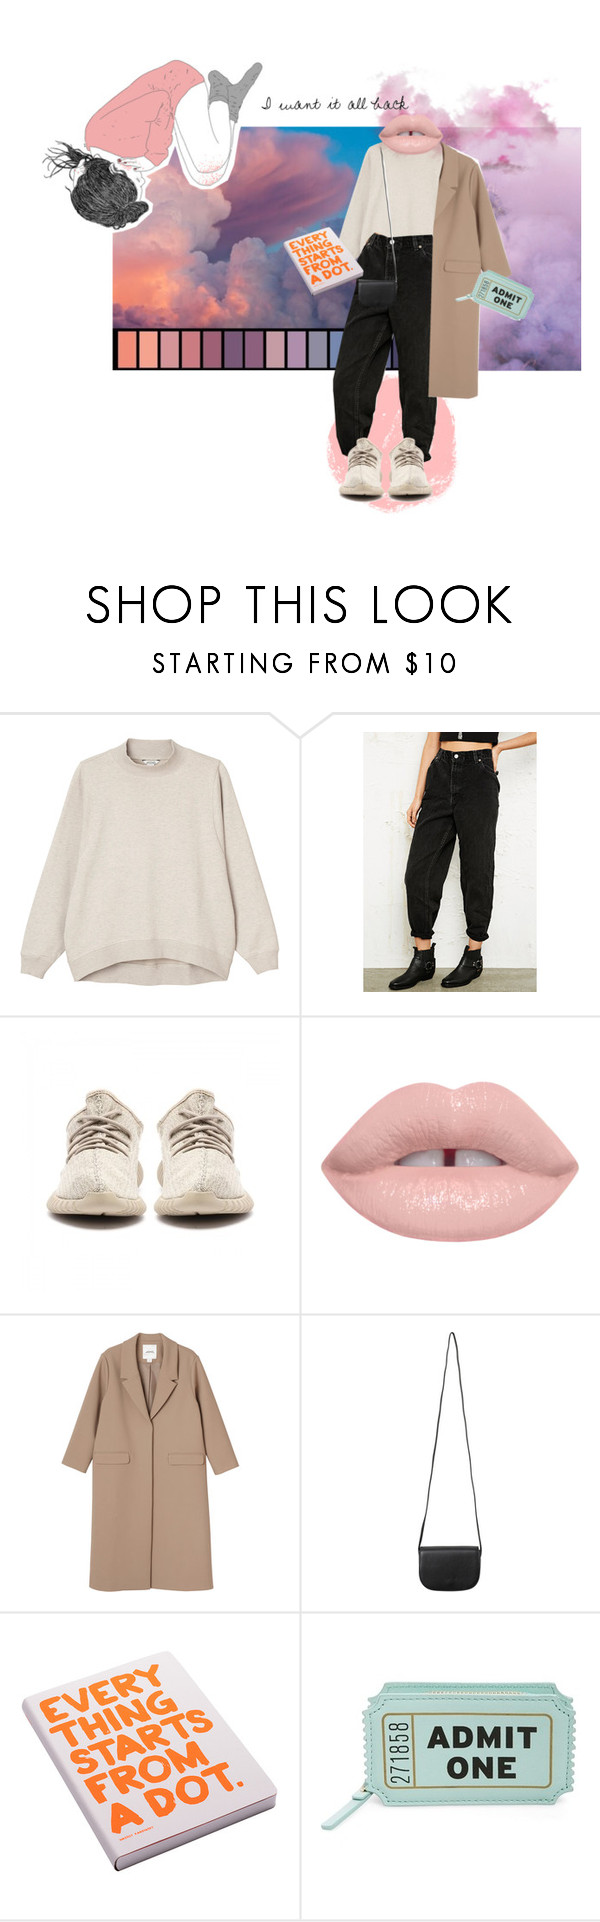 """I wish we could rewind time 2 months back"" by linnettebar ❤ liked on Polyvore featuring Monki, Urban Renewal, Nuuna and Kate Spade"